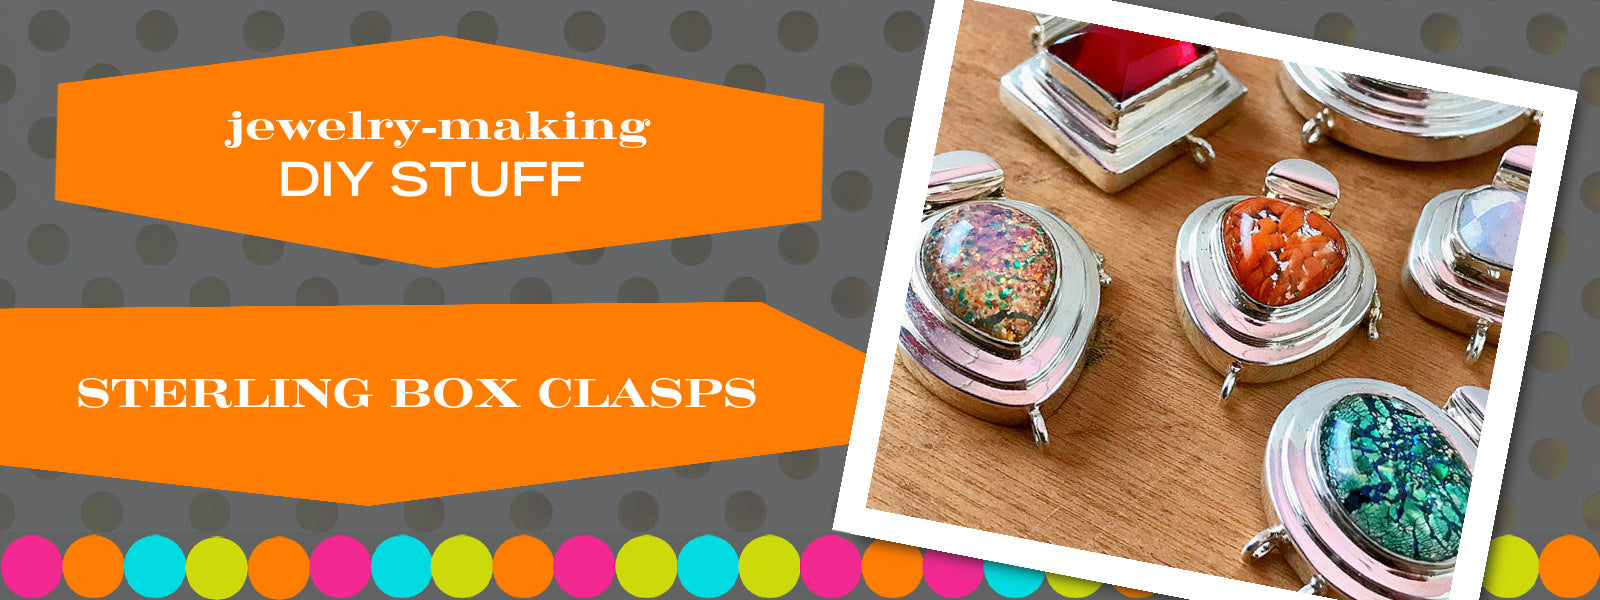 Clasps are what hold a piece of jewelry together and can be an integral component elevating your jewelry piece into wearable art. Suzie Q Studio has an amazing collection of beautiful box clasps that can be the centrepiece of your DIY jewelry project.